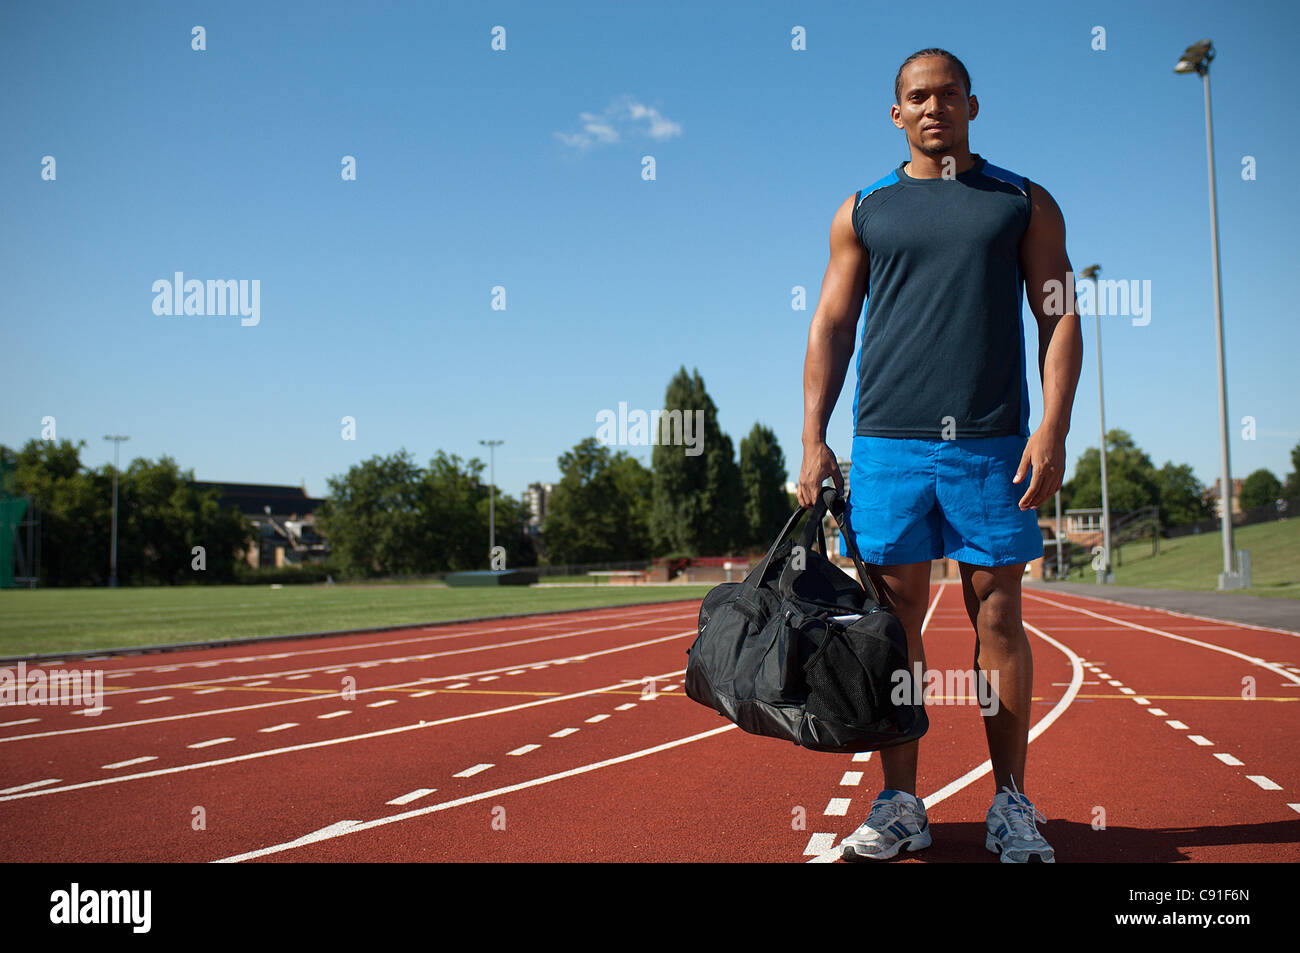 Athlete standing on track - Stock Image